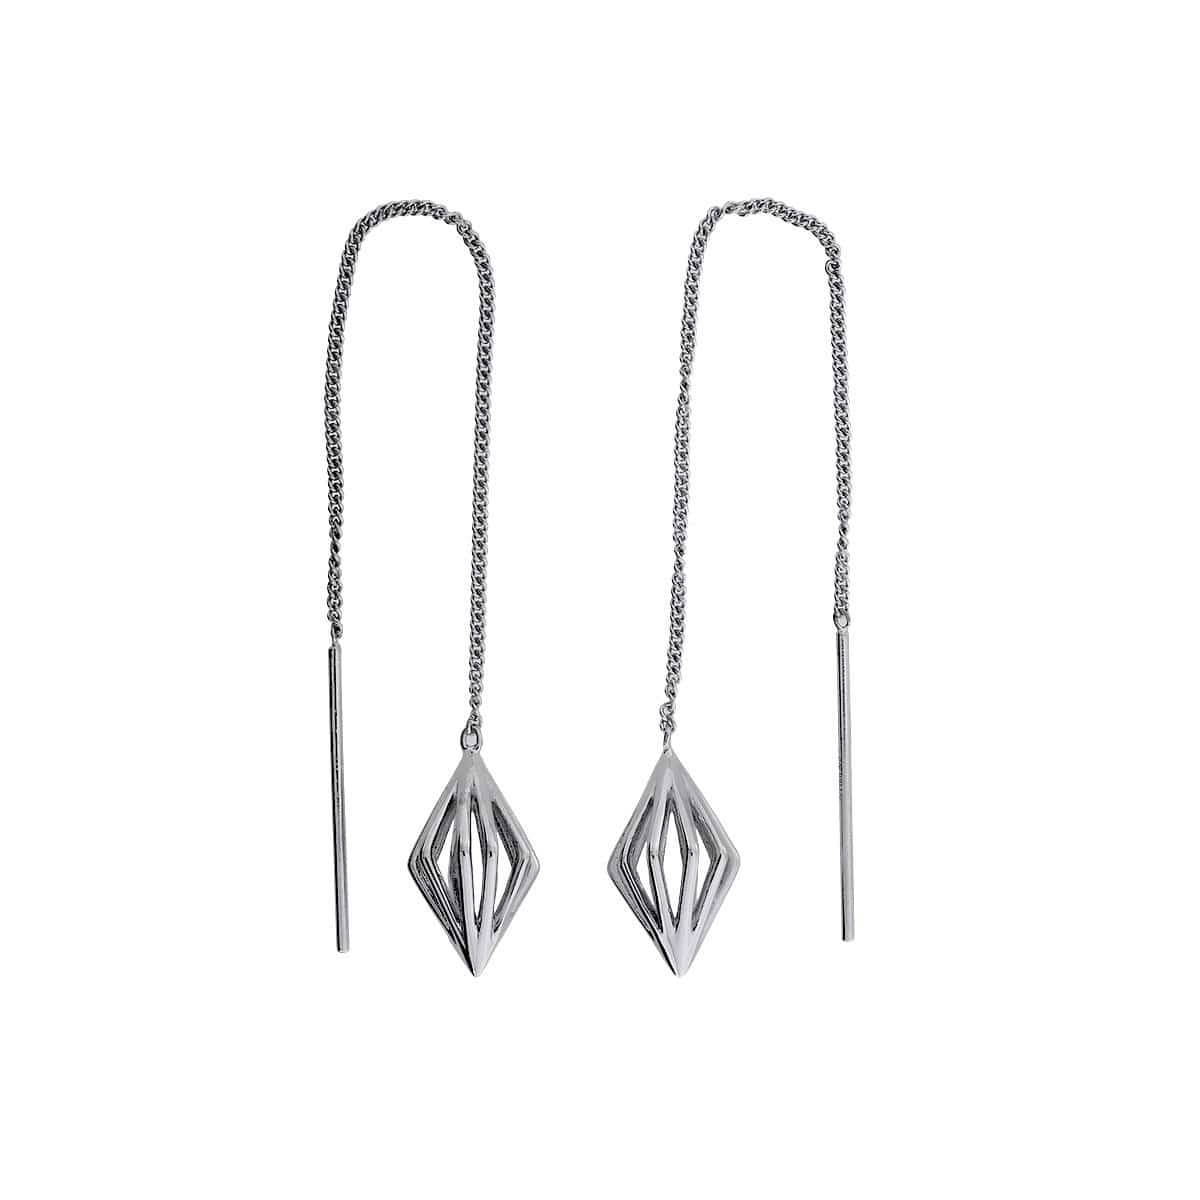 Silver Prismatic Threader Earrings